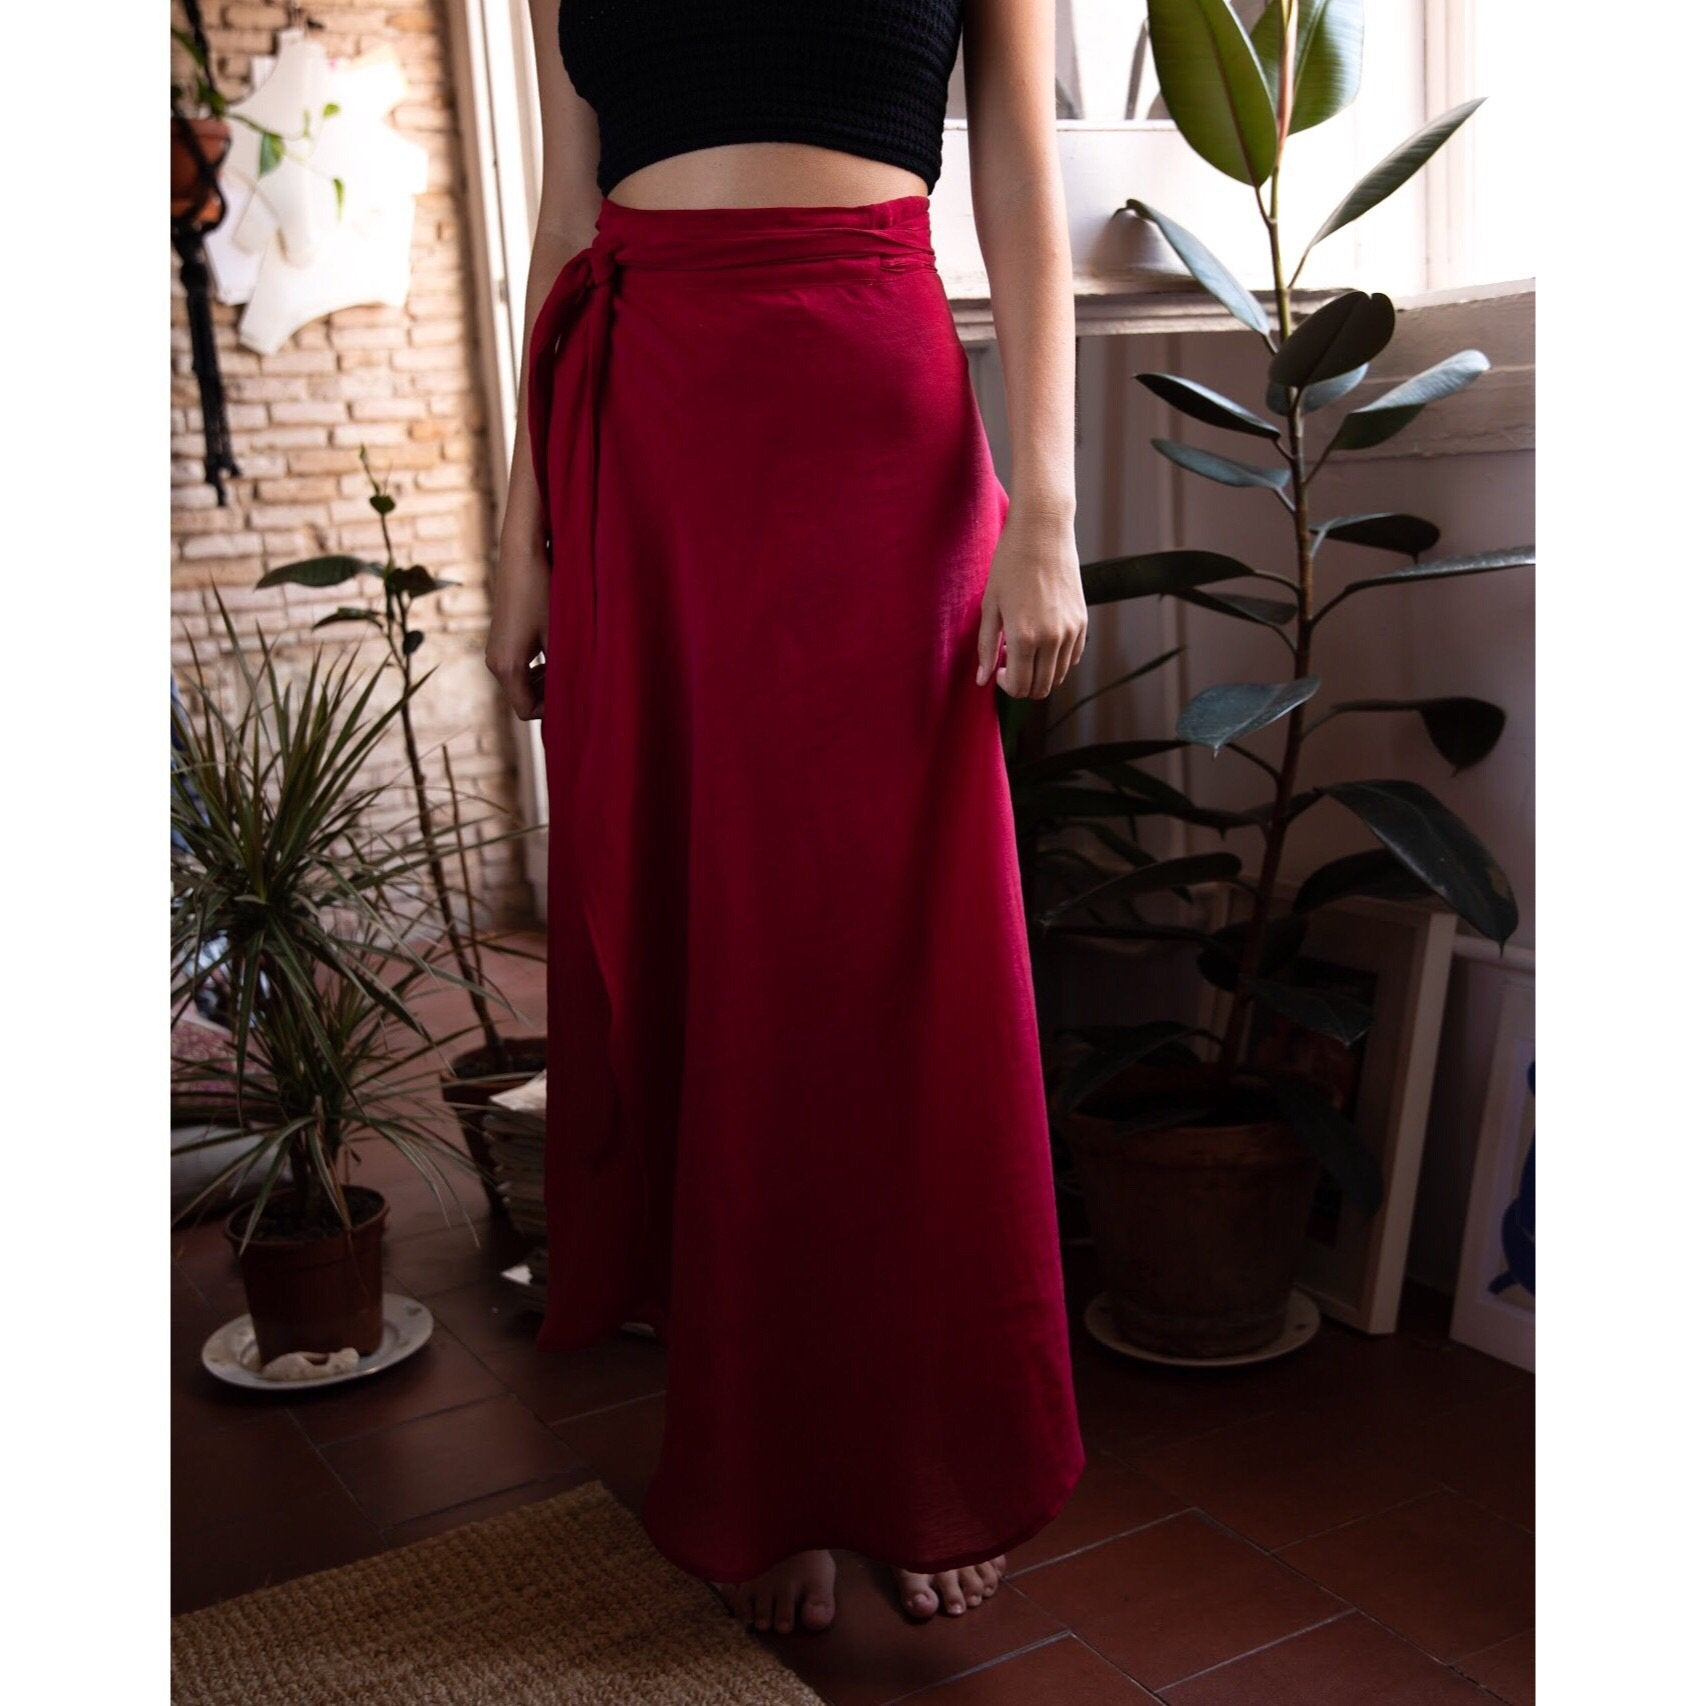 Catalina Wrap long skirt. - Plhi studio